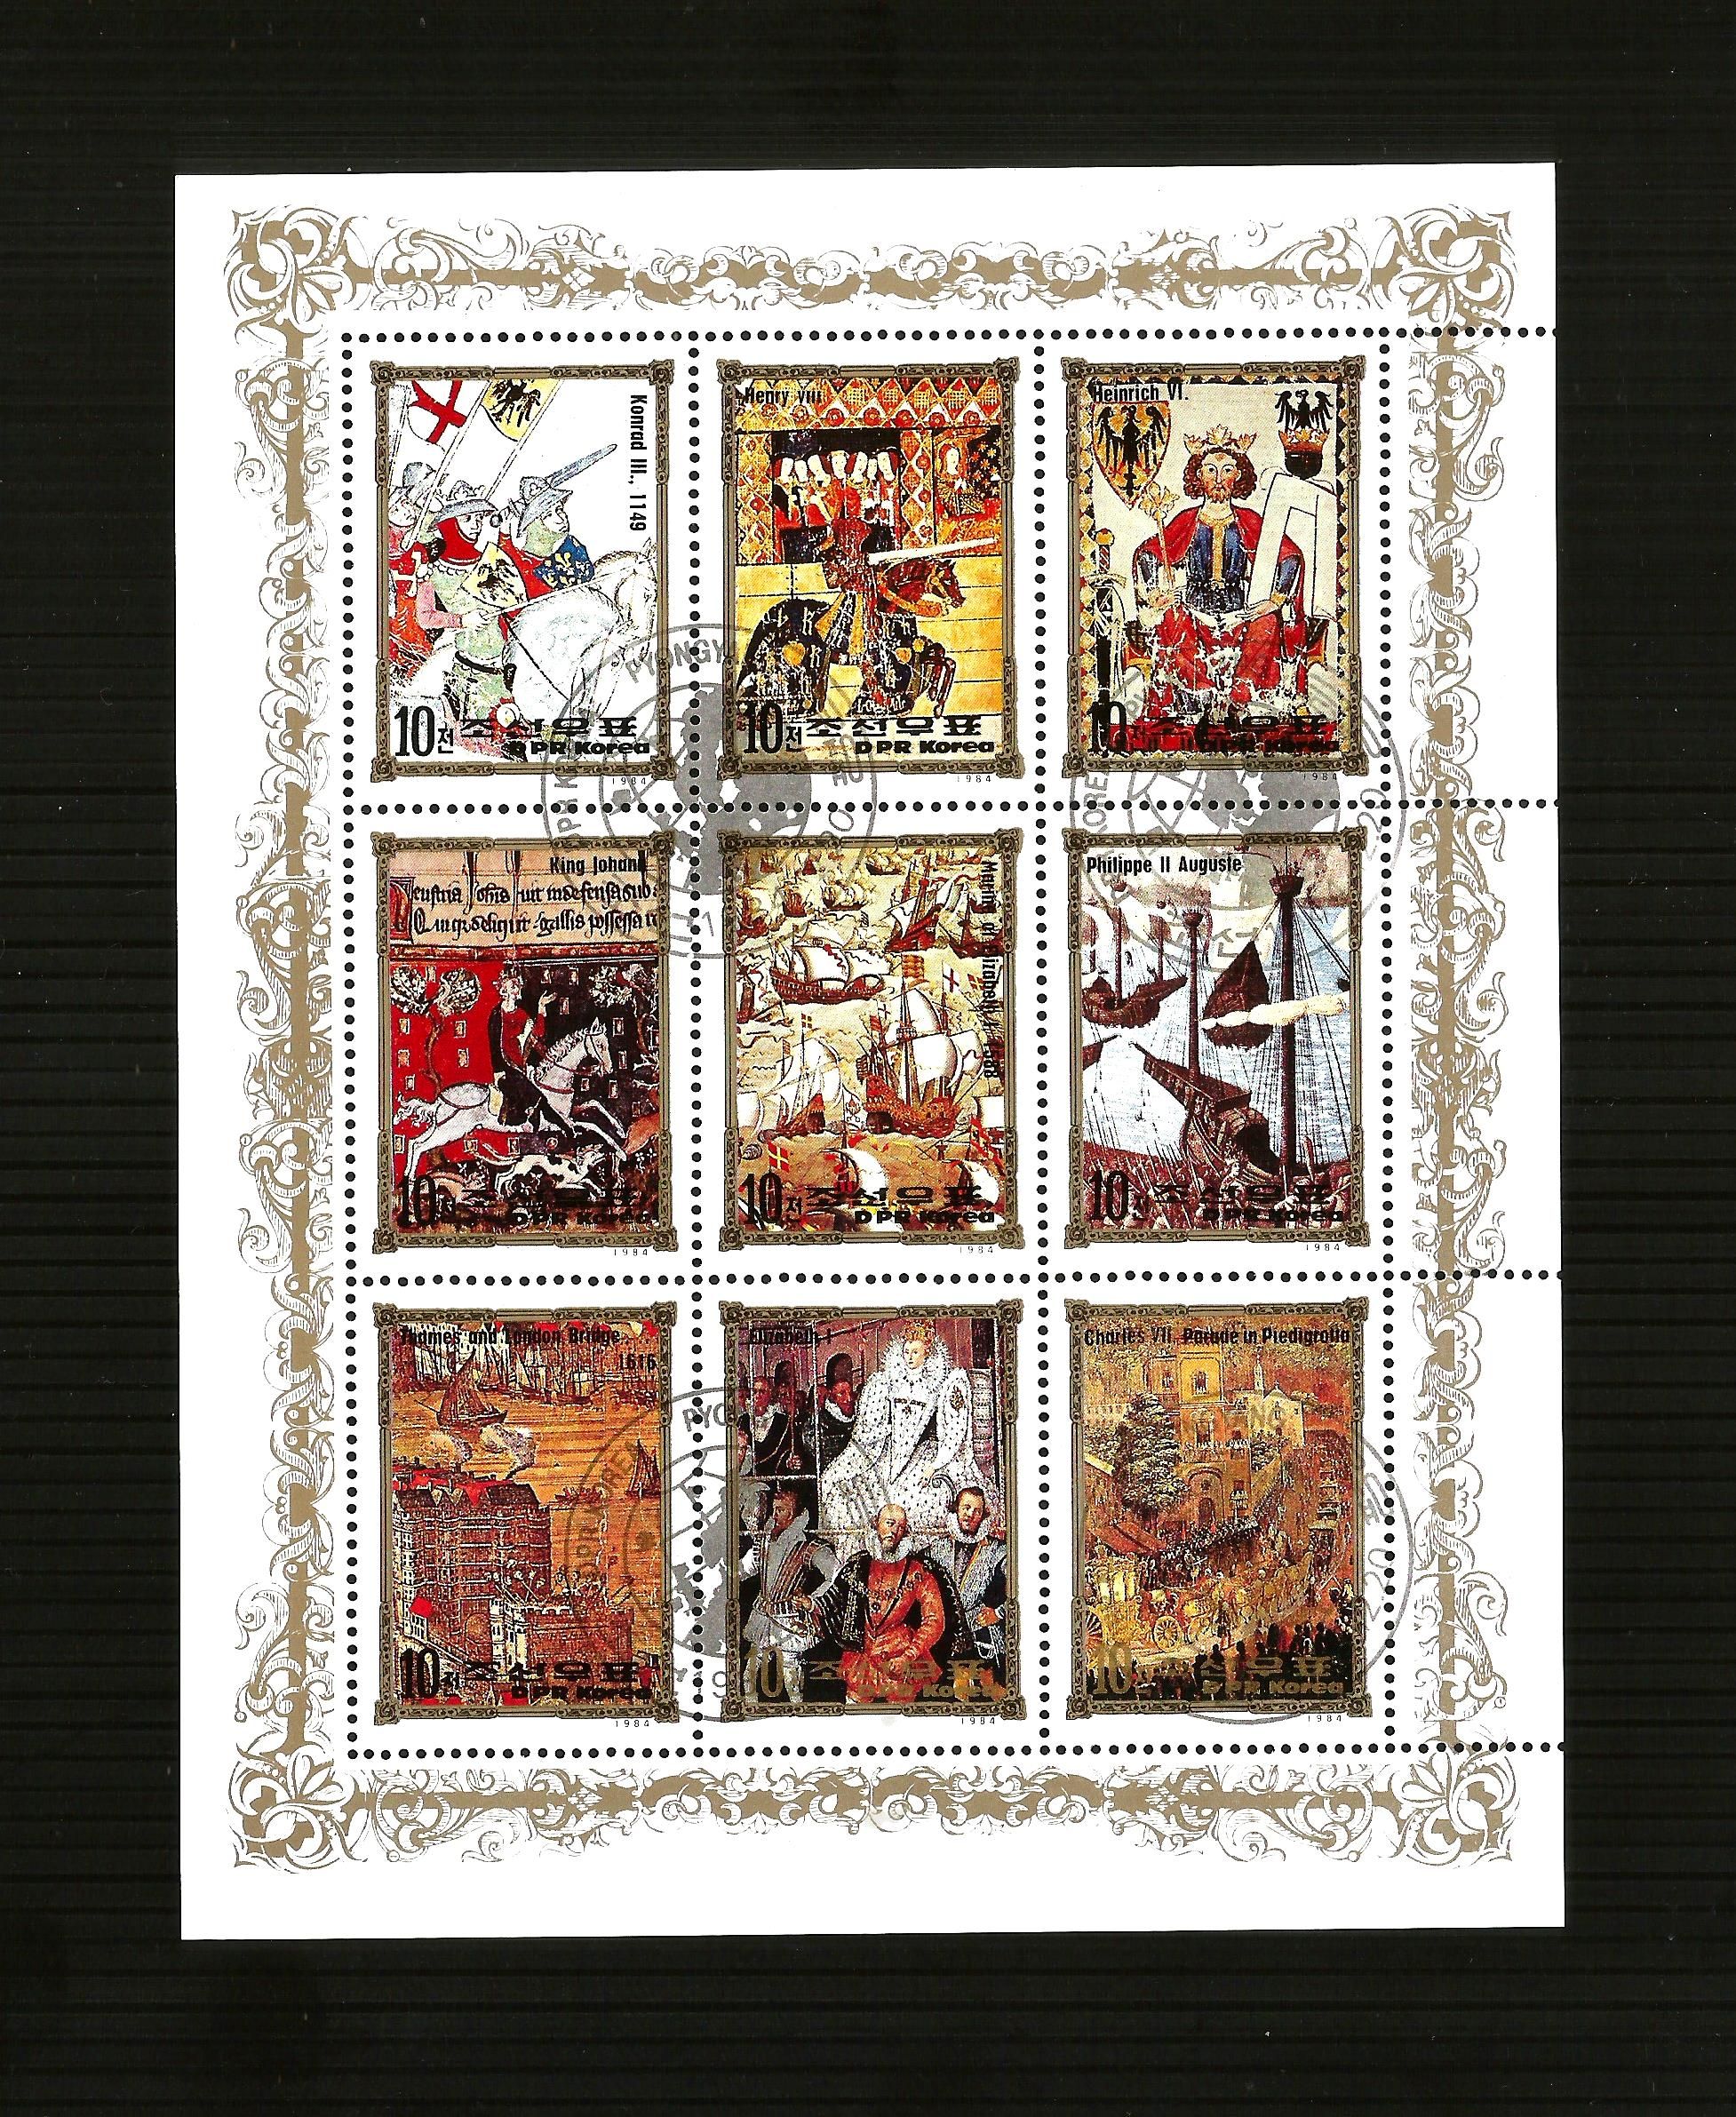 200 KOREA - 1984 EUROPEAN ROYALTY 4 - MINISHEET - UNMOUNTED USED